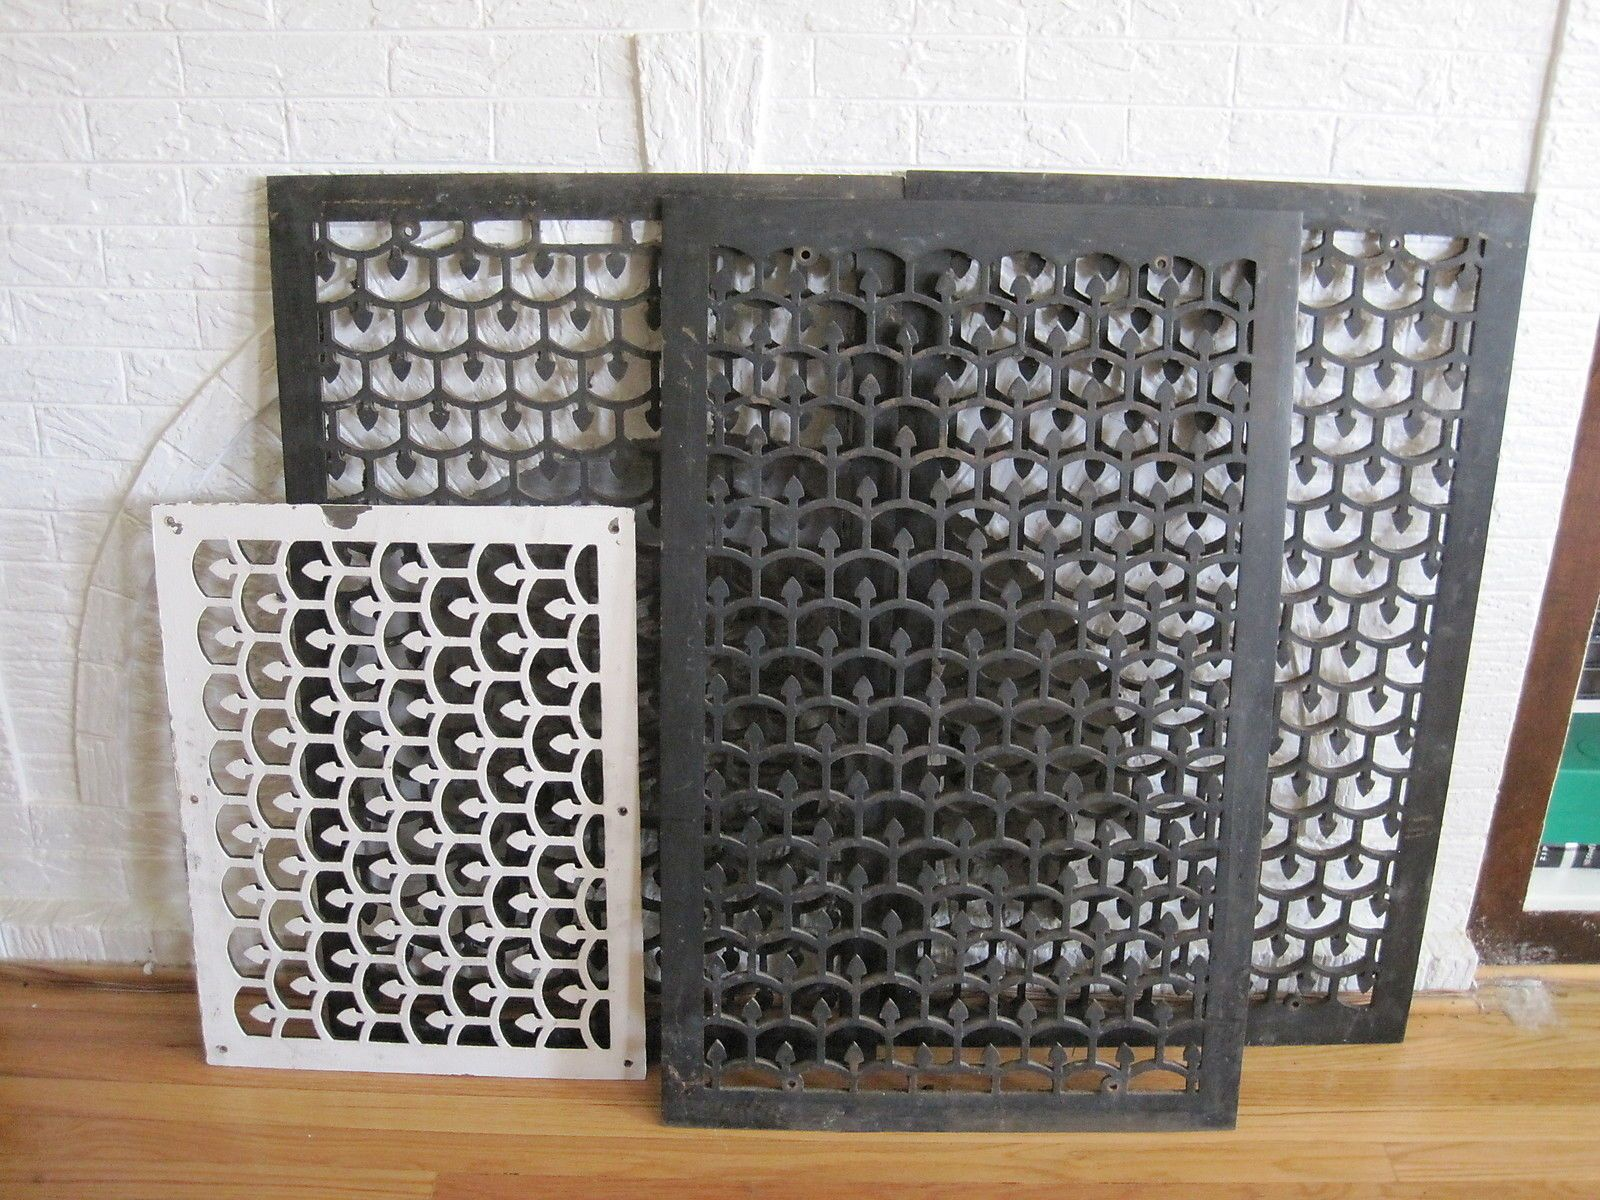 Vintage Large Cast Iron Decorative Heat Grate Vent Cover Table Top 25 X 39 Vent Covers Ceiling Decor Wall Grille